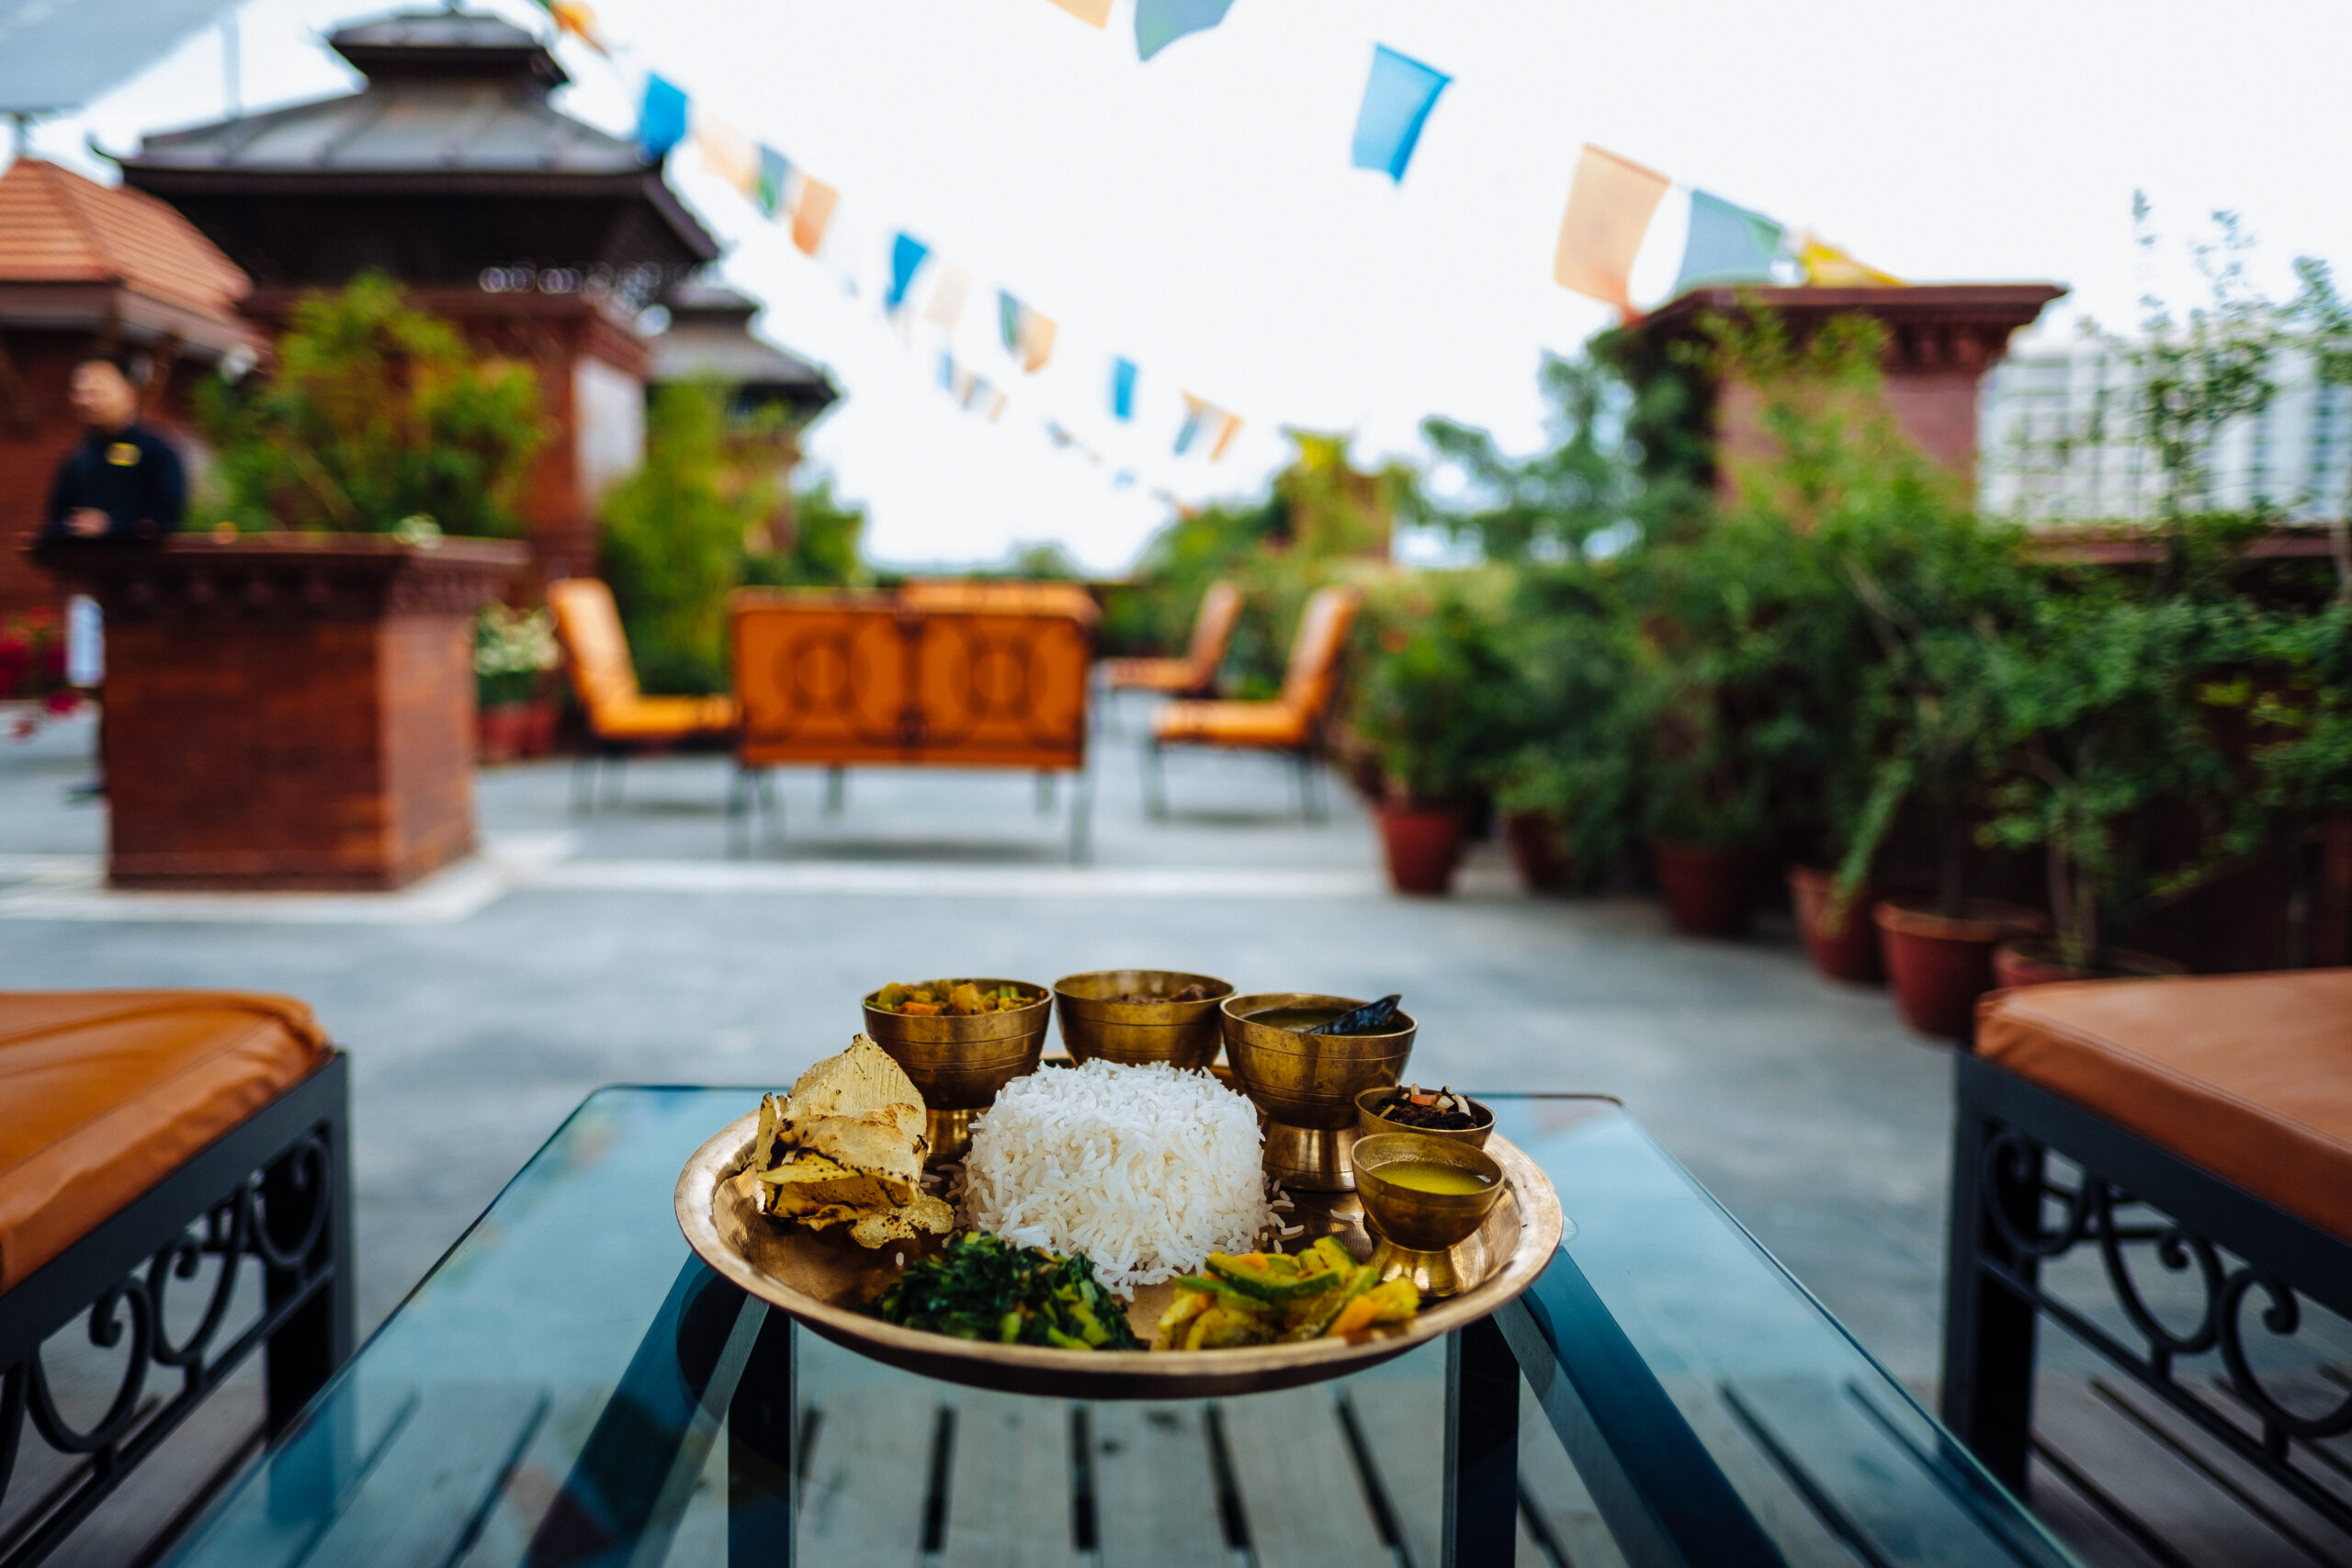 Nepali-Thali-set-at-Rooftop-Terrace-in-Traditional-Comfort